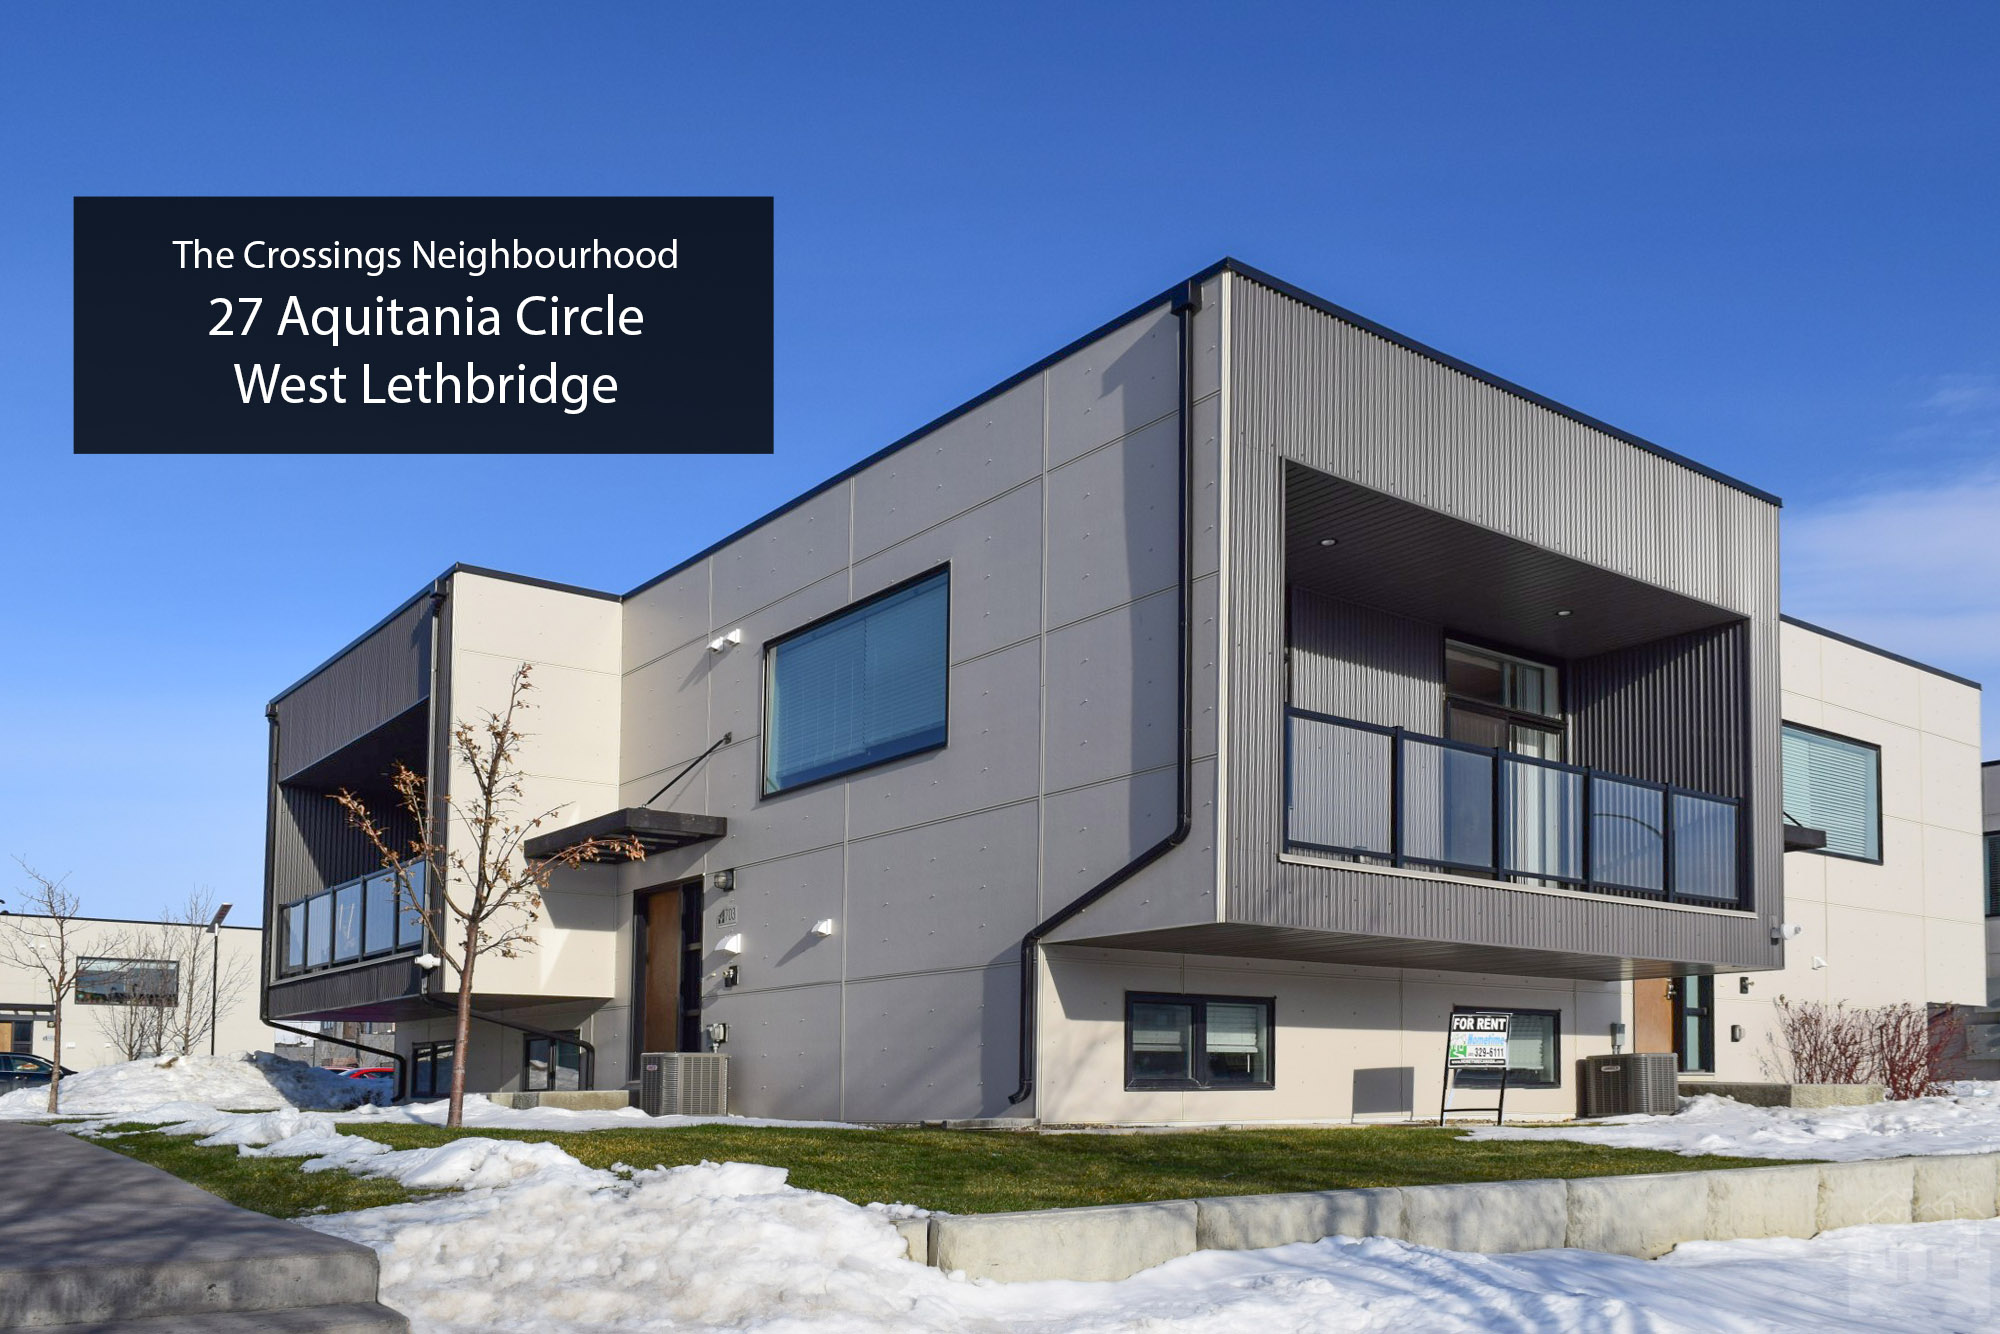 27 Aquitania Circle West Lethbridge (Unit 703) Key Image